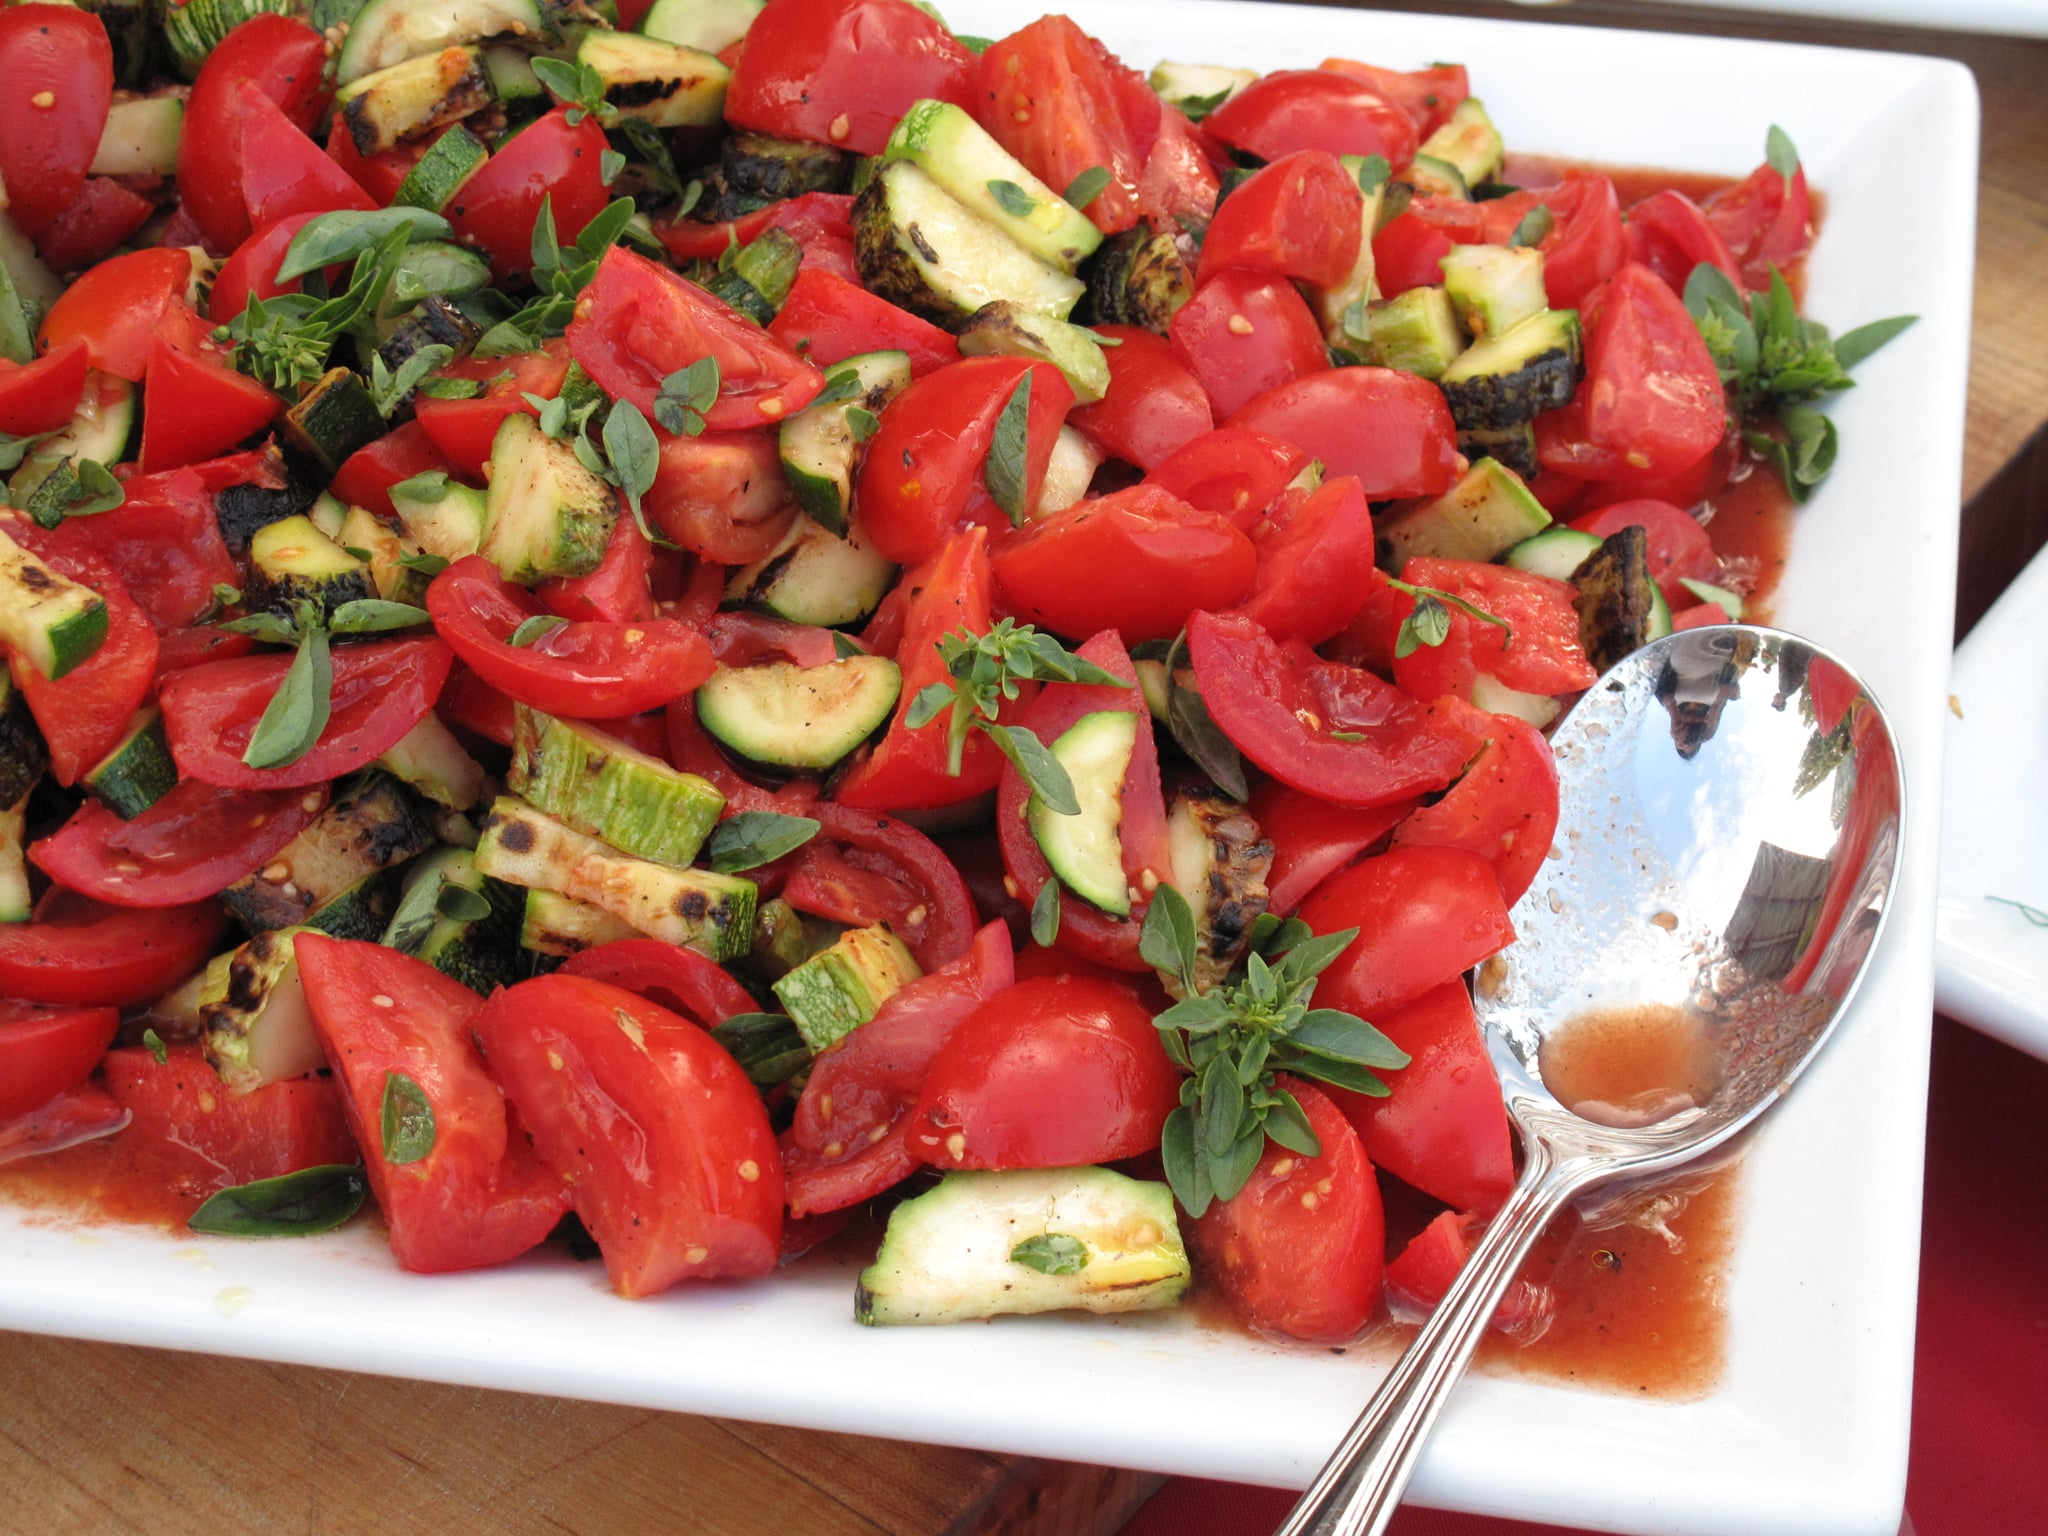 A super-fresh tomato salad highlighting the fruits of late Summer.